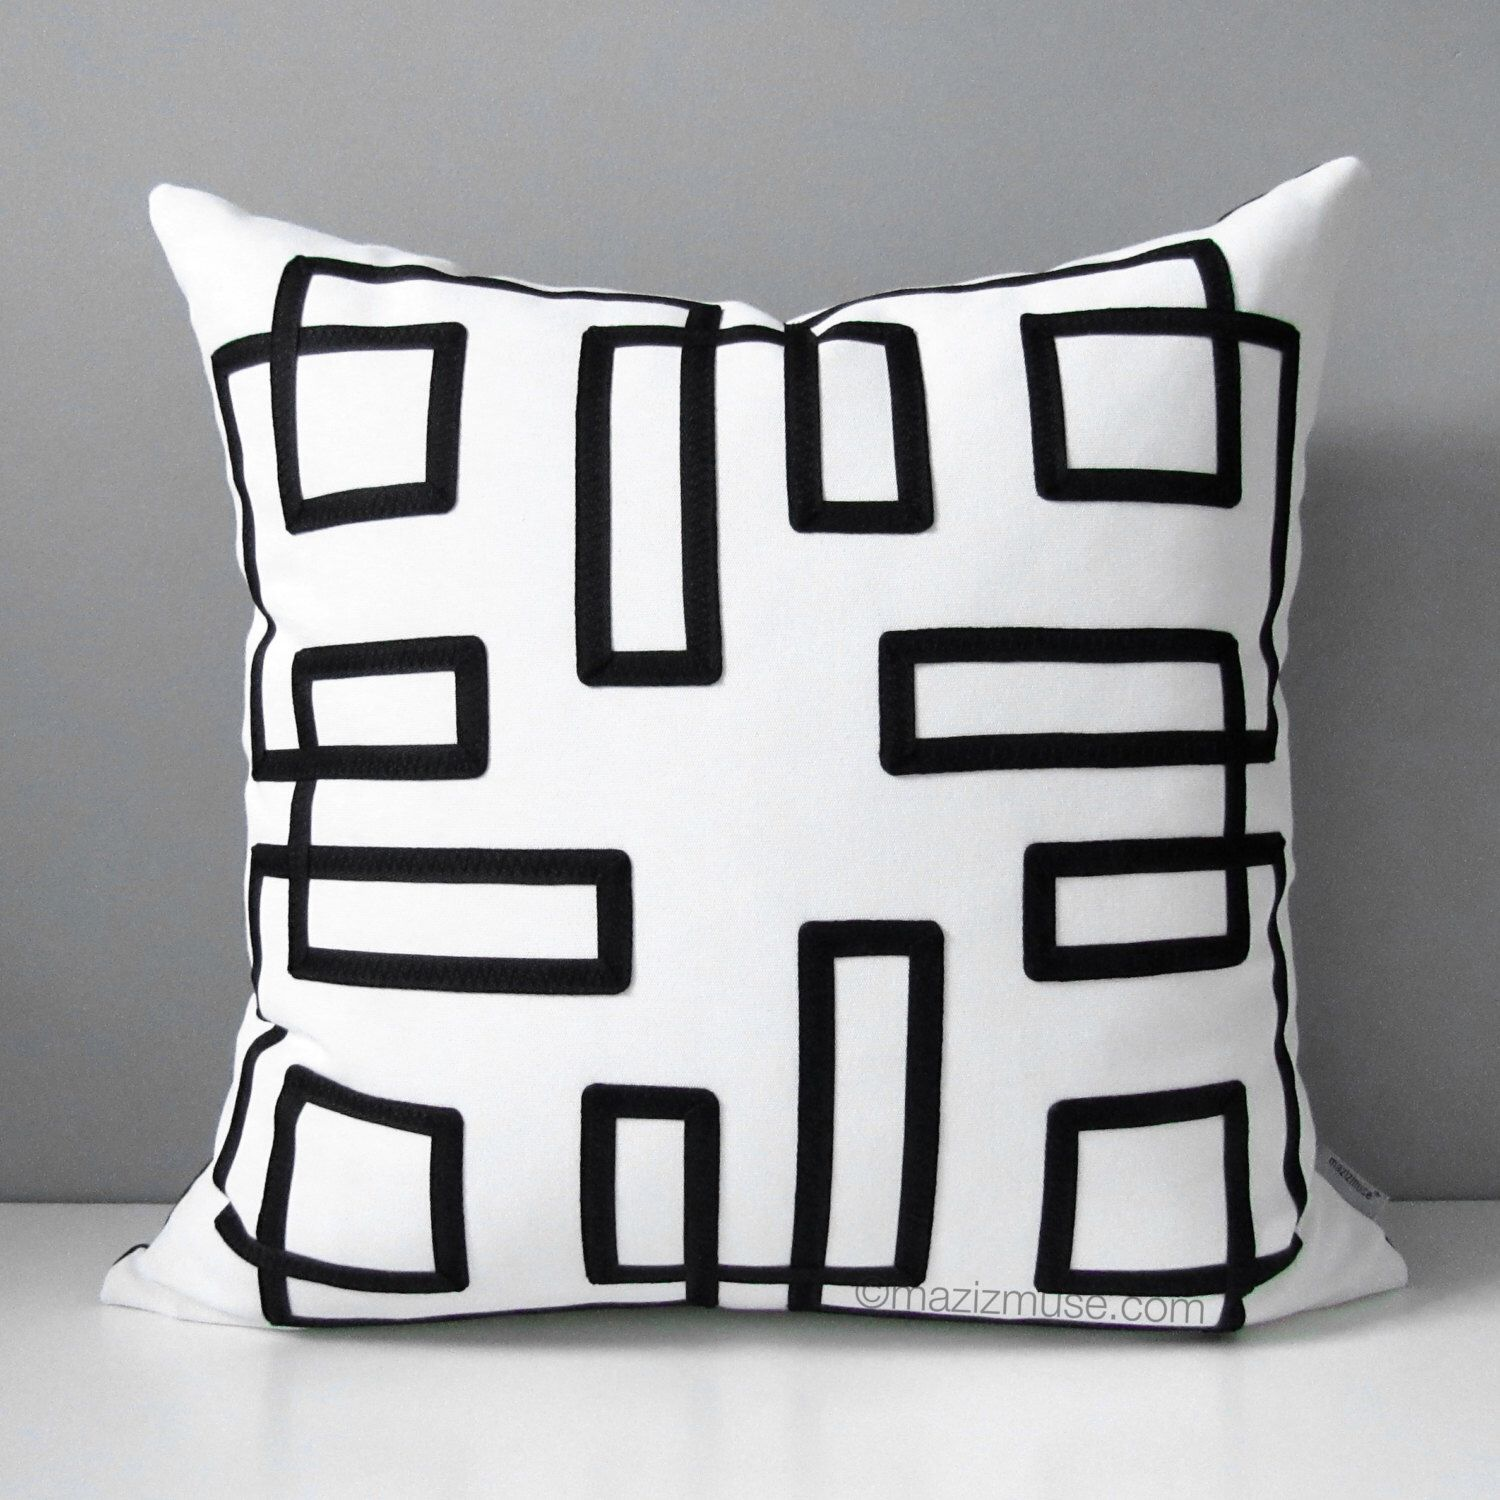 Black White Outdoor Pillow Cover Decorative Pillow Case Trellis